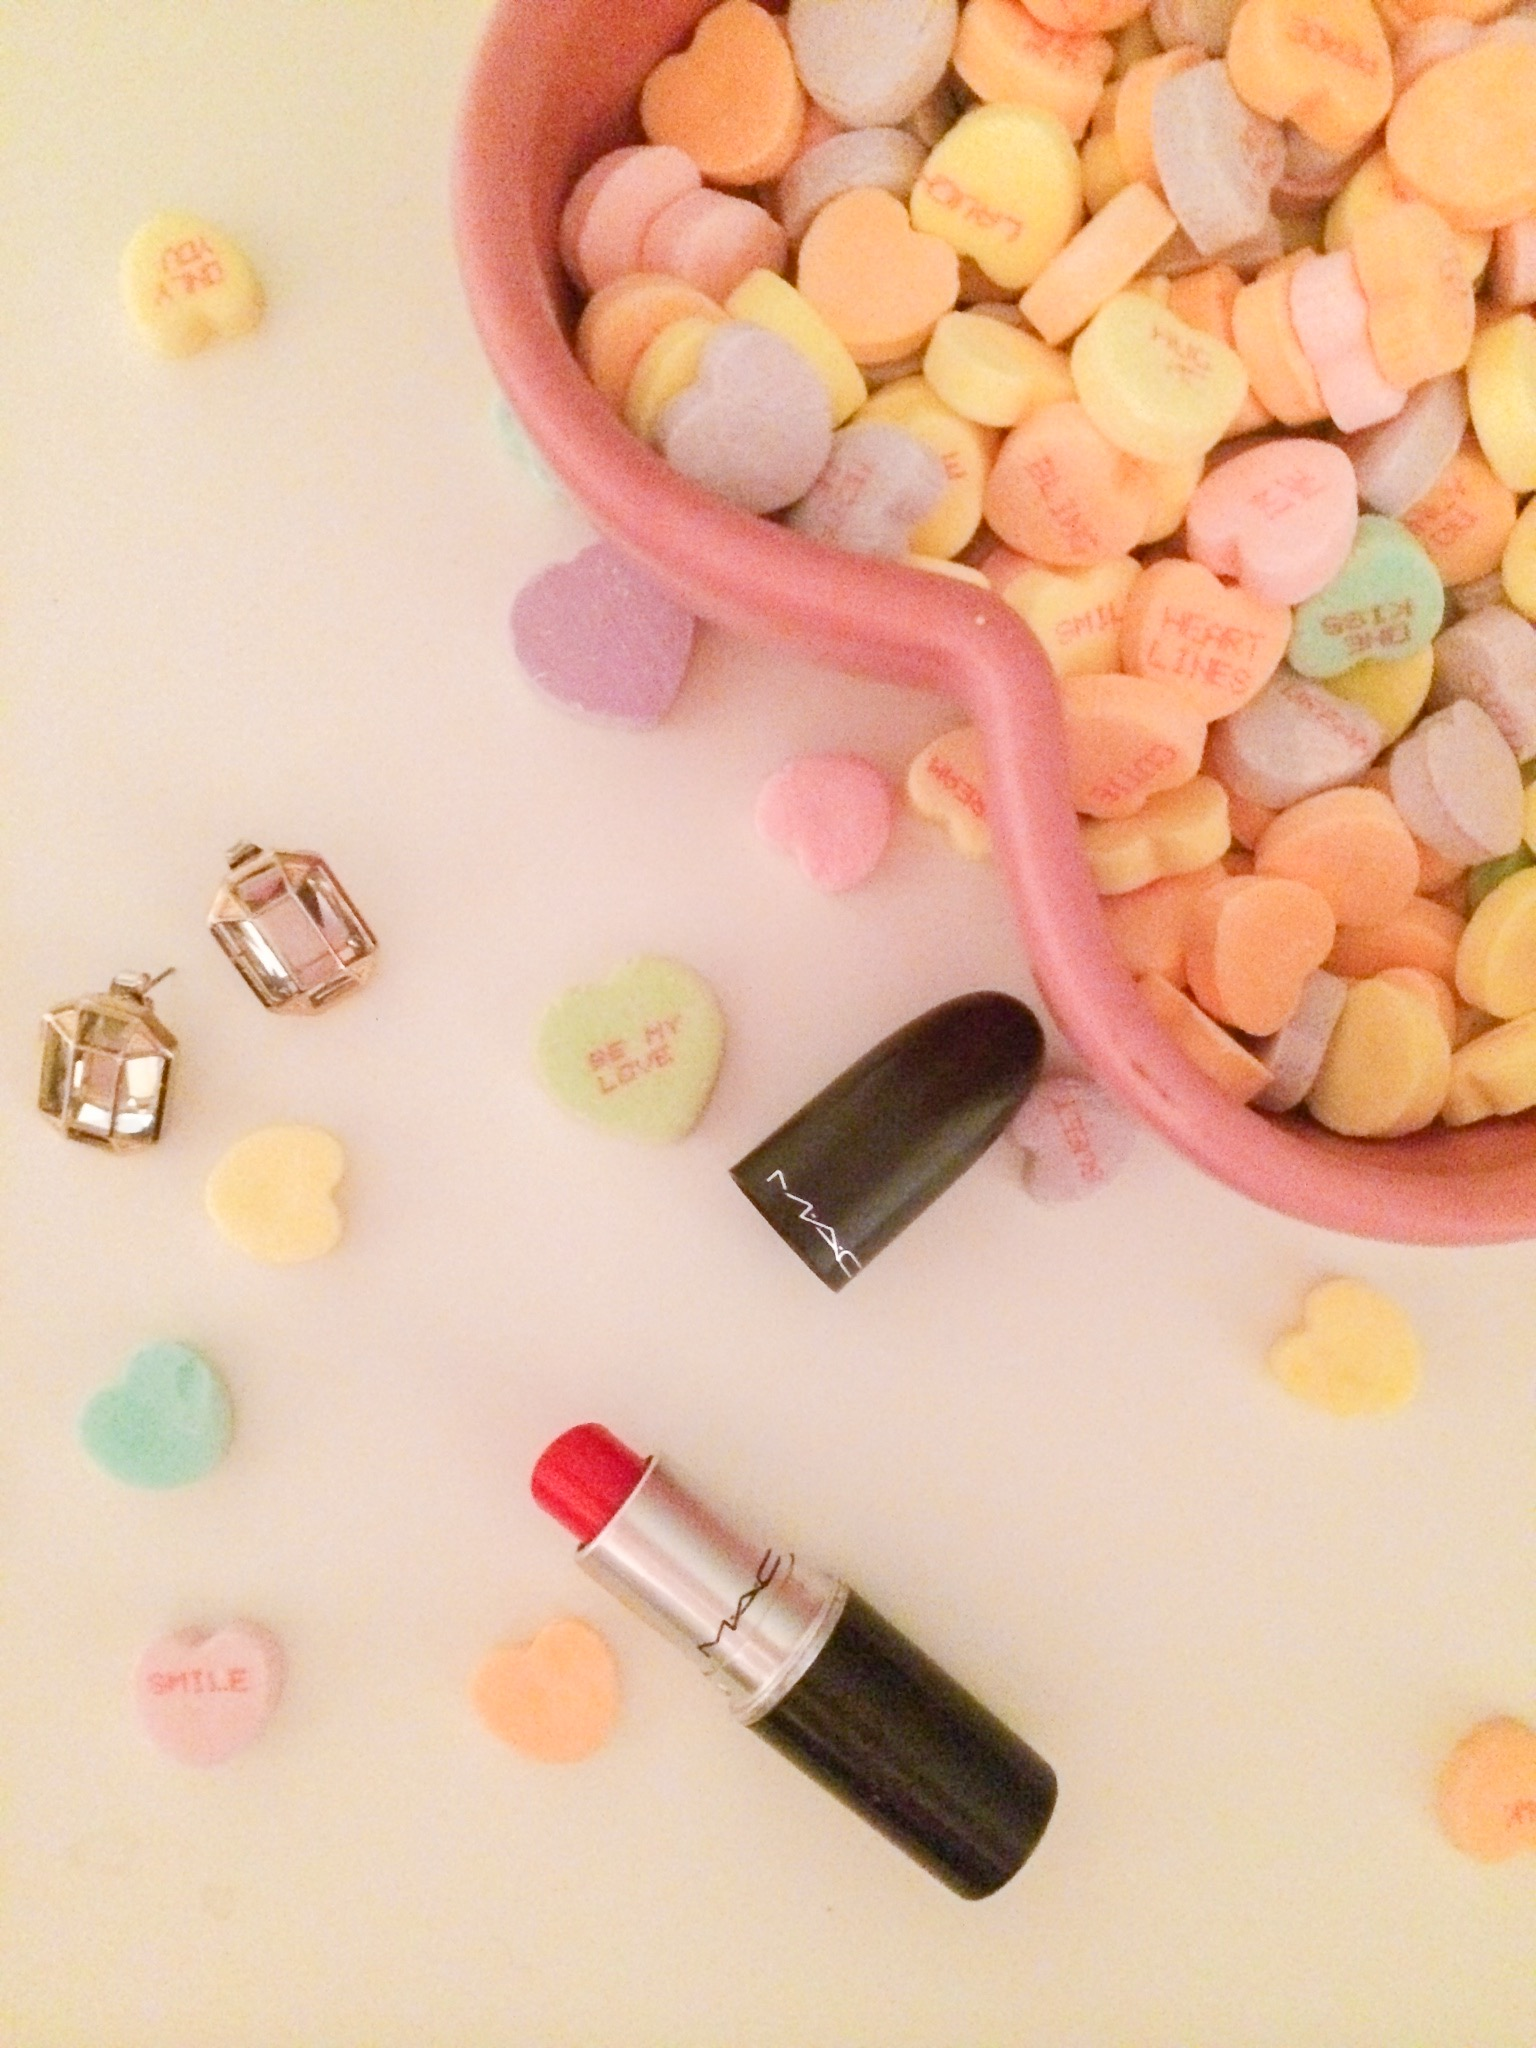 Getting Ready for V-day